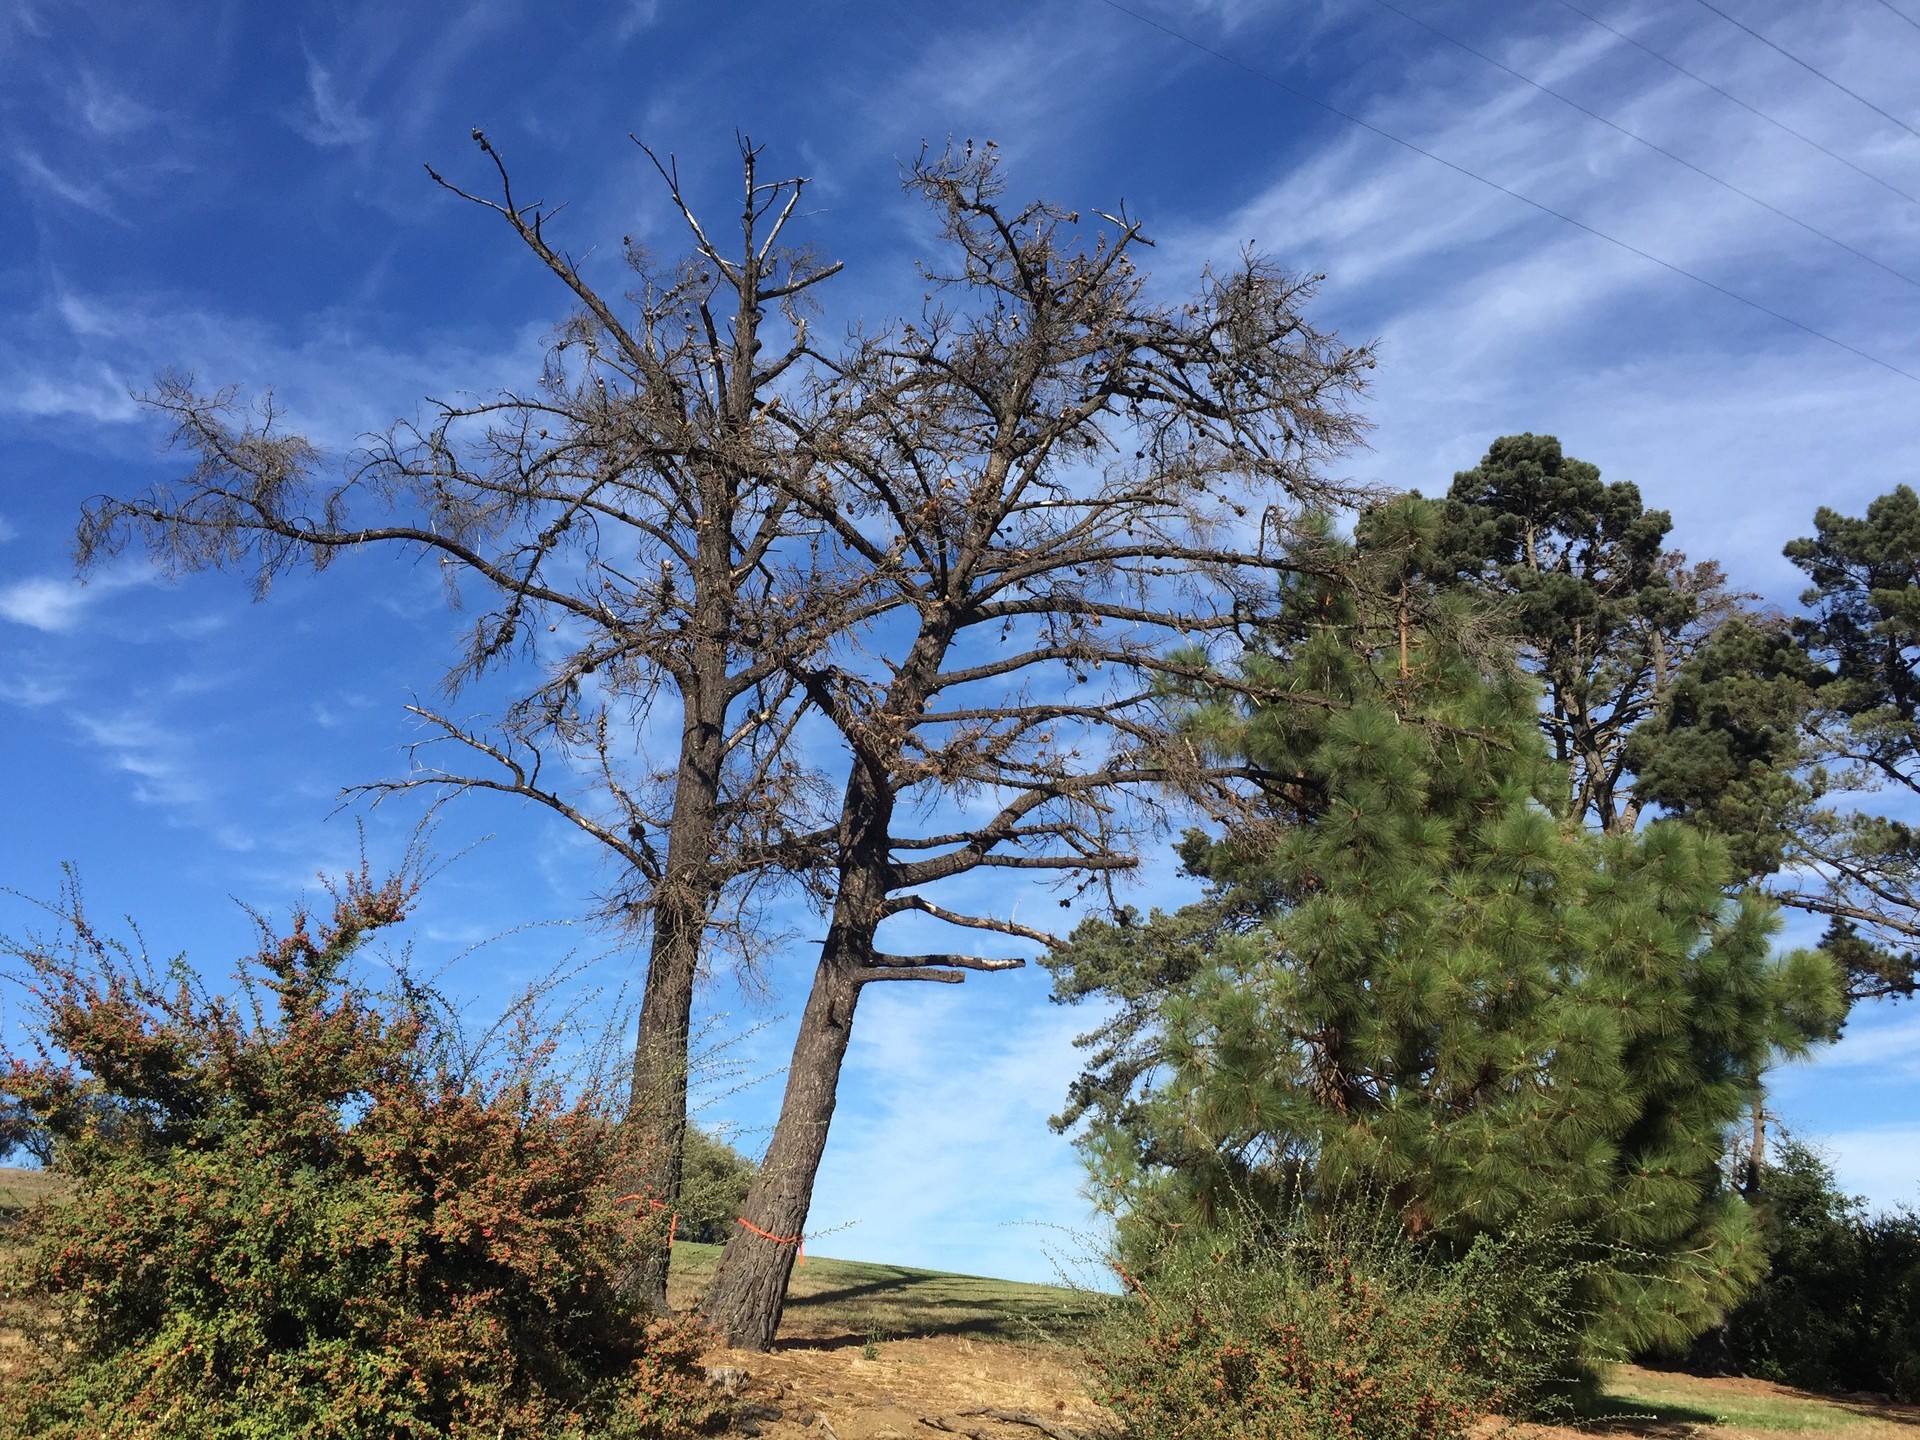 It's not just remote forests: Monterey pines that succumbed to the drought, tagged for removal in a city park in Vallejo.